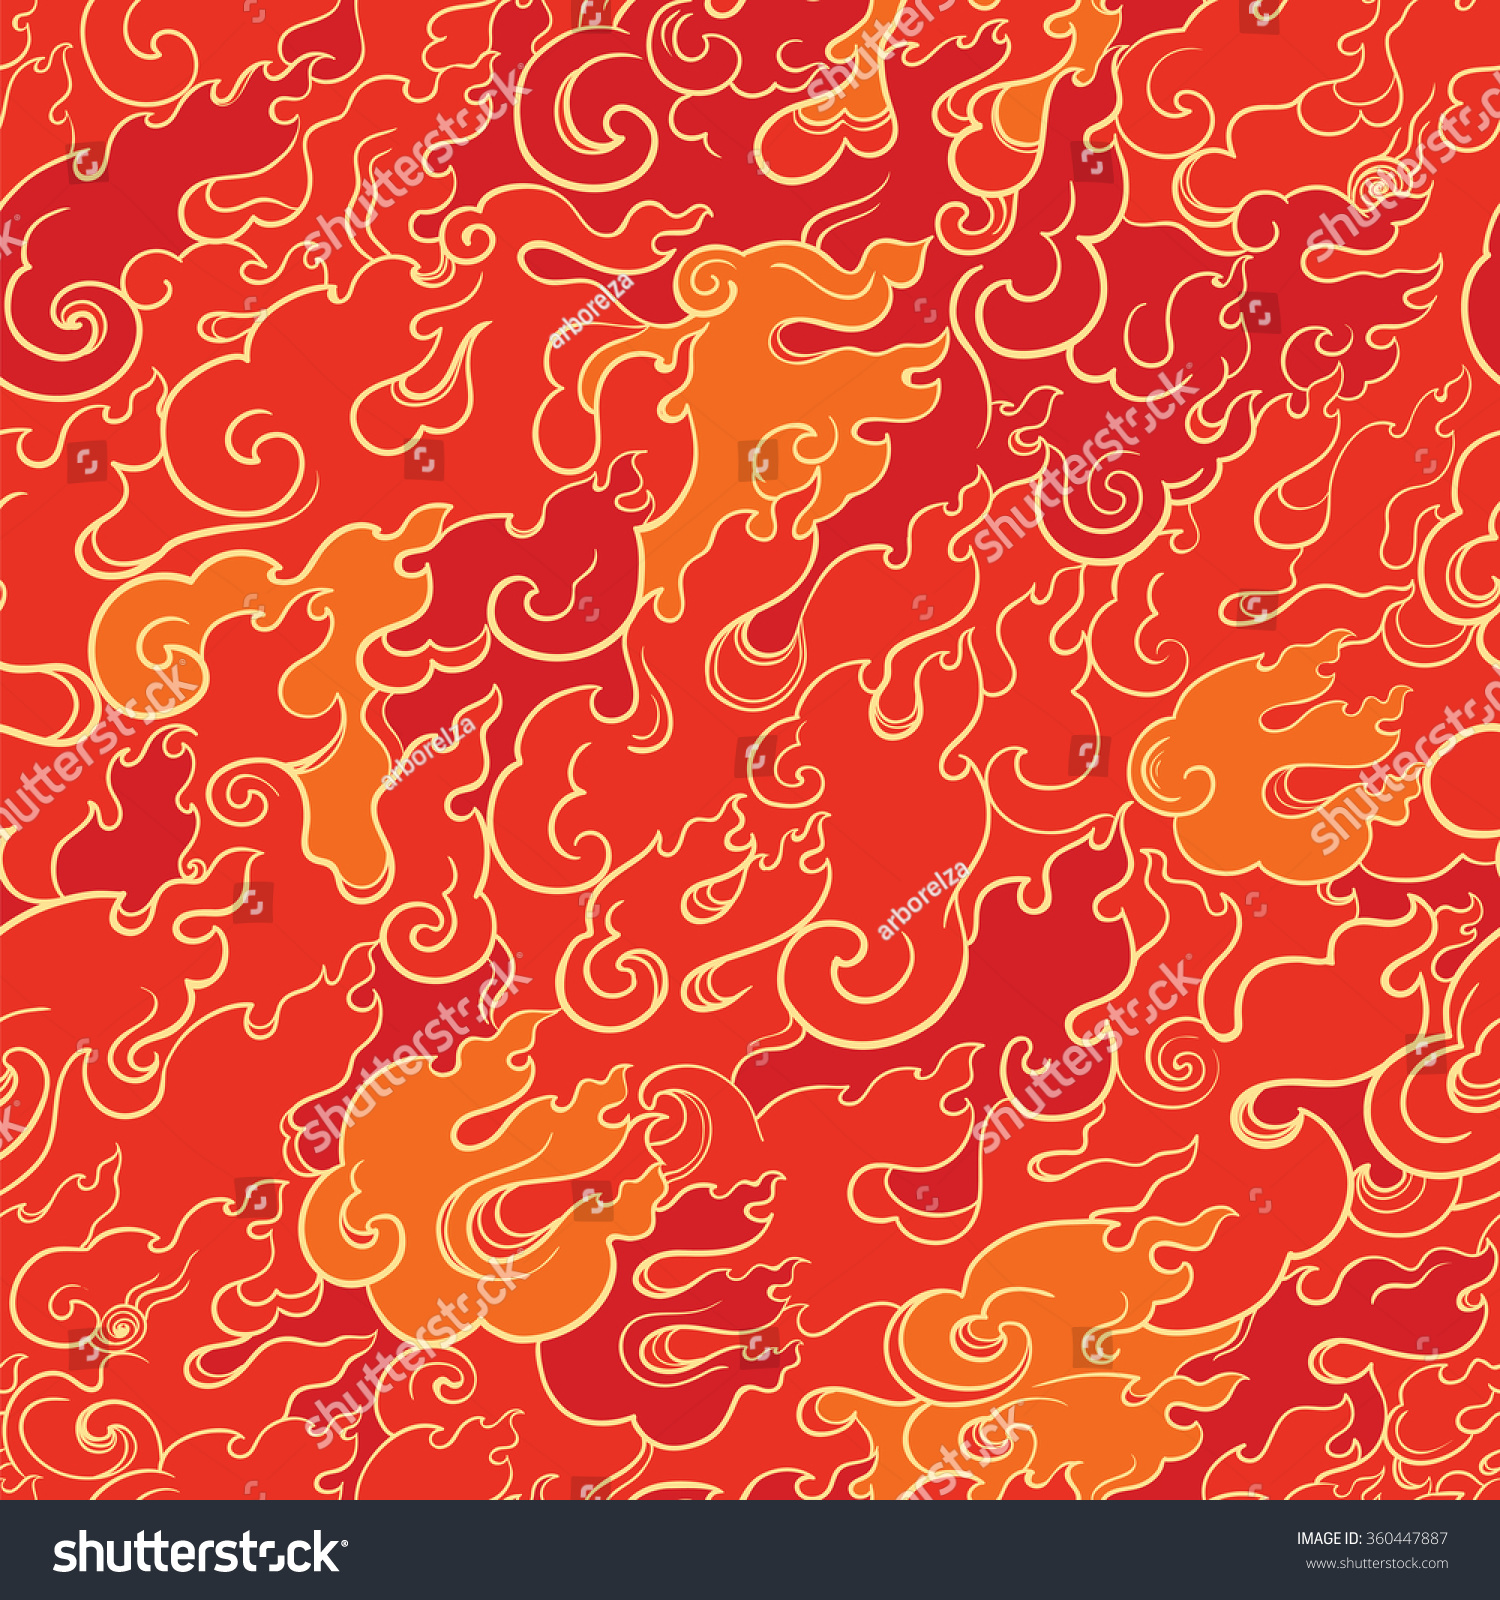 Fire pattern designs images galleries for Pattern design ideas